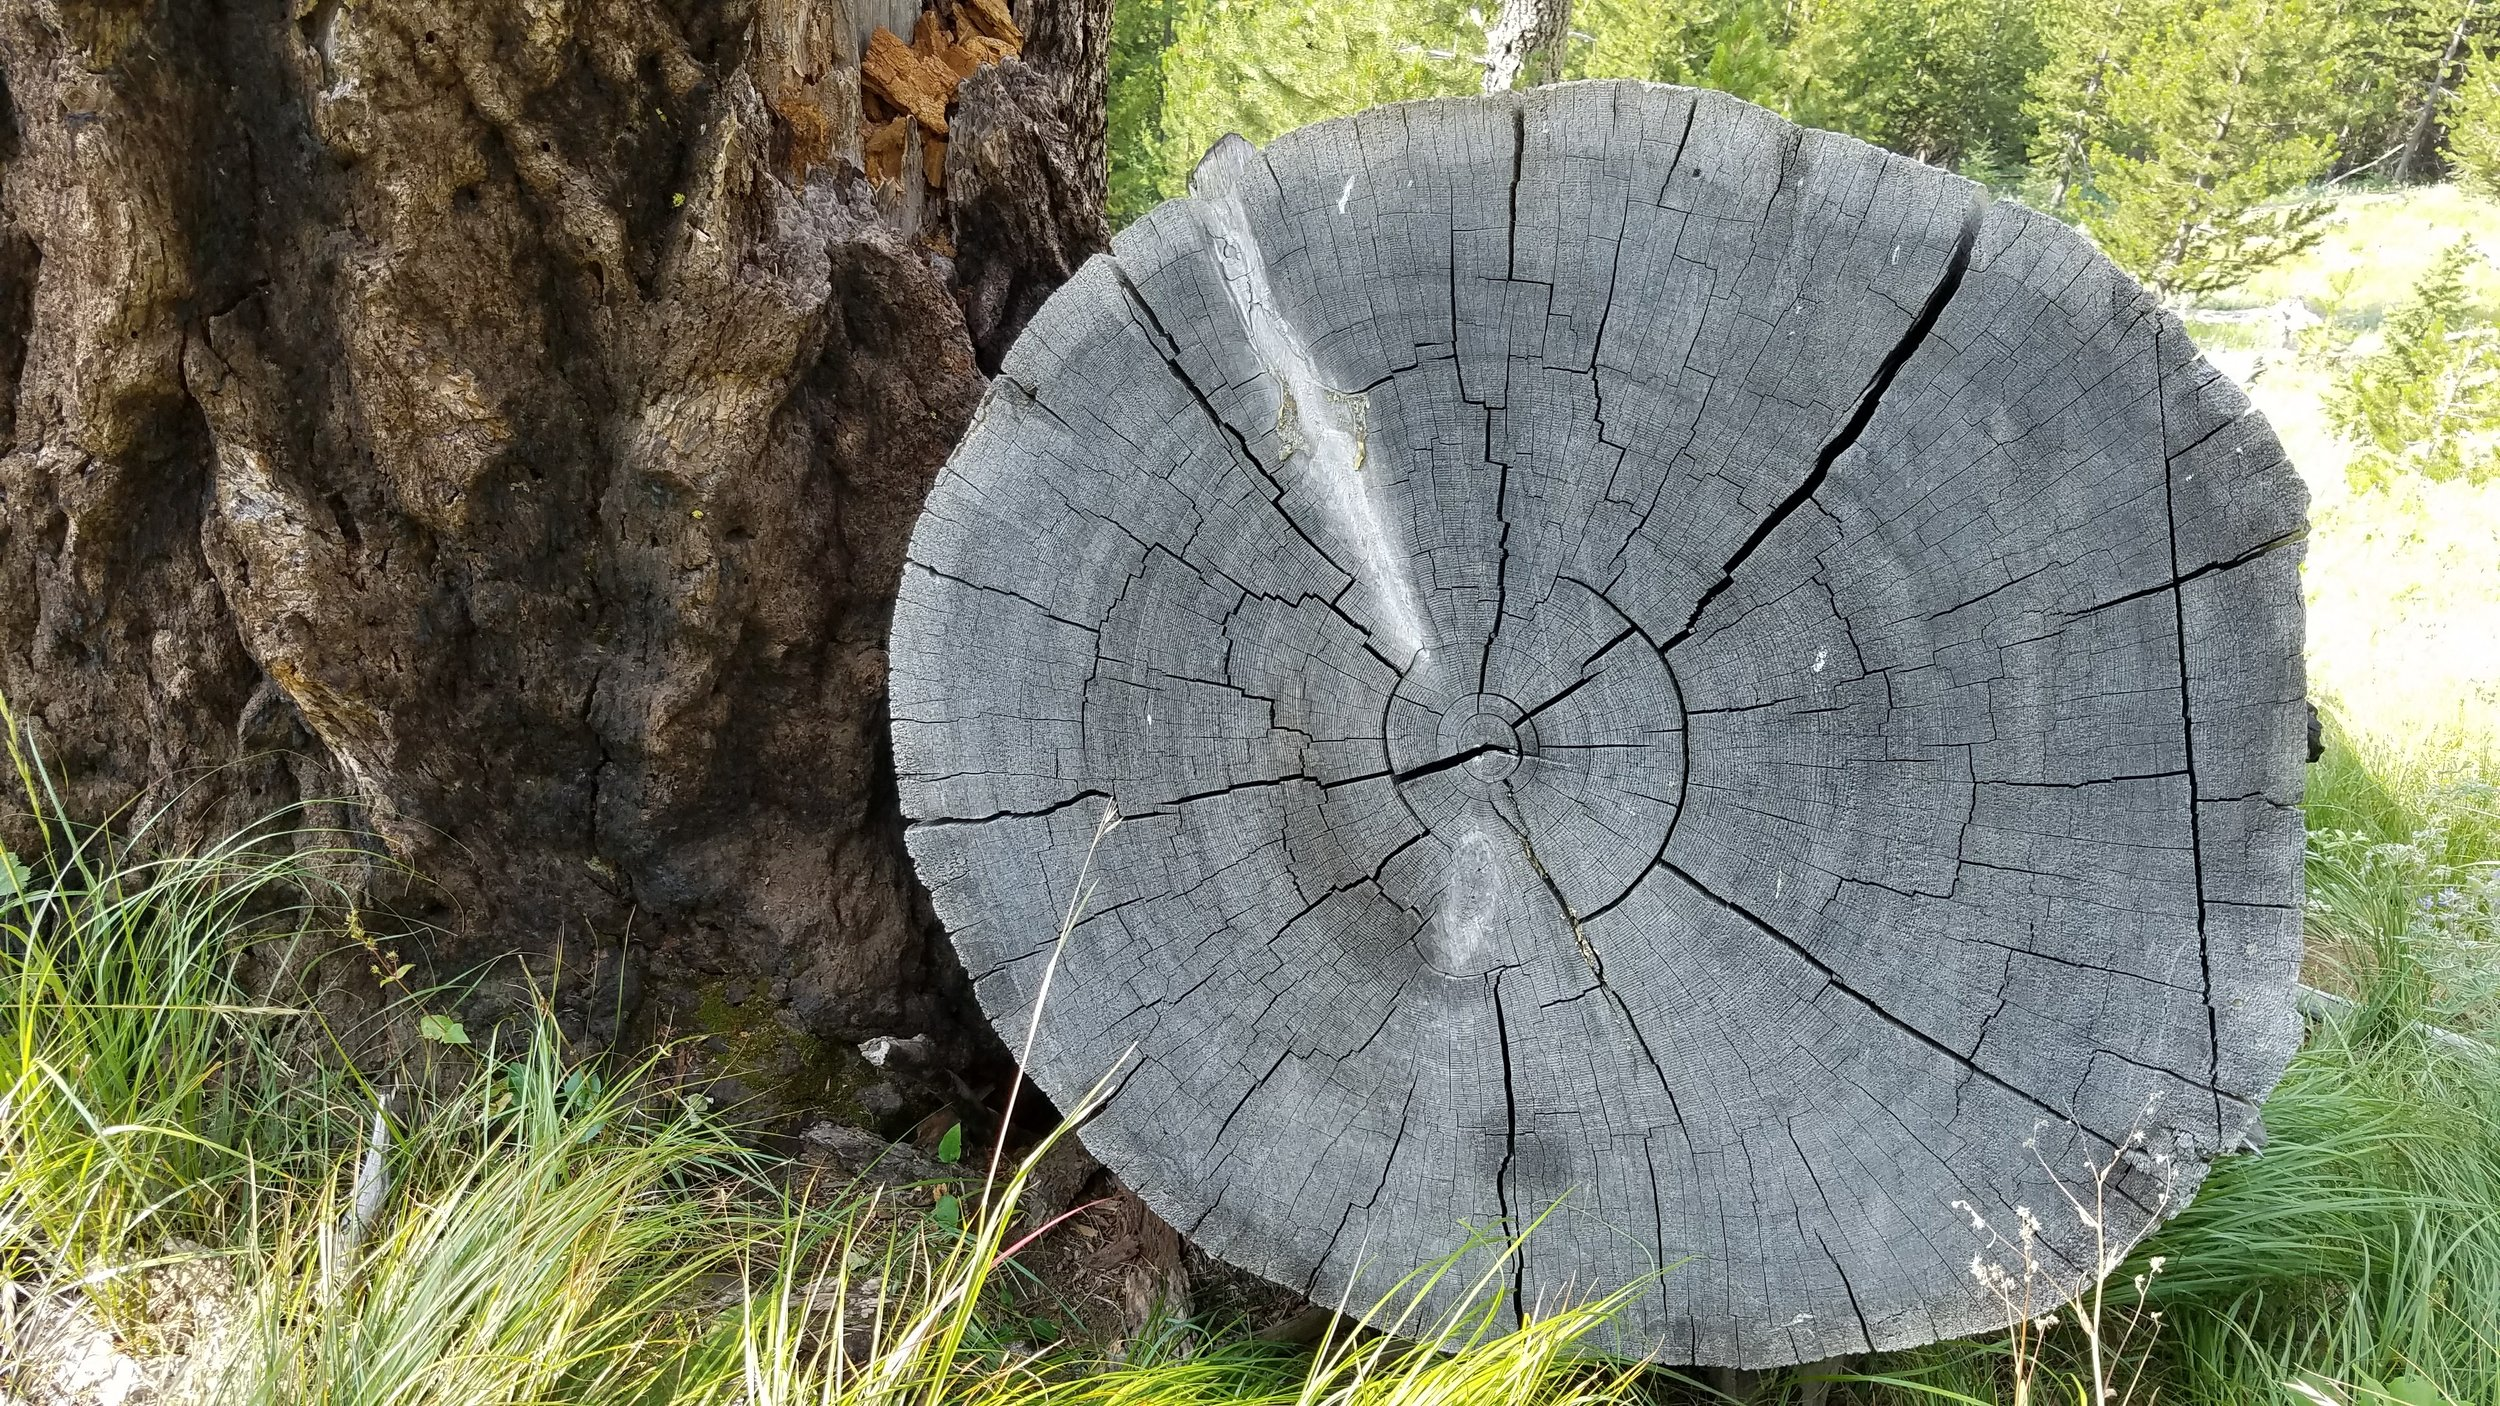 Tight growth rings.